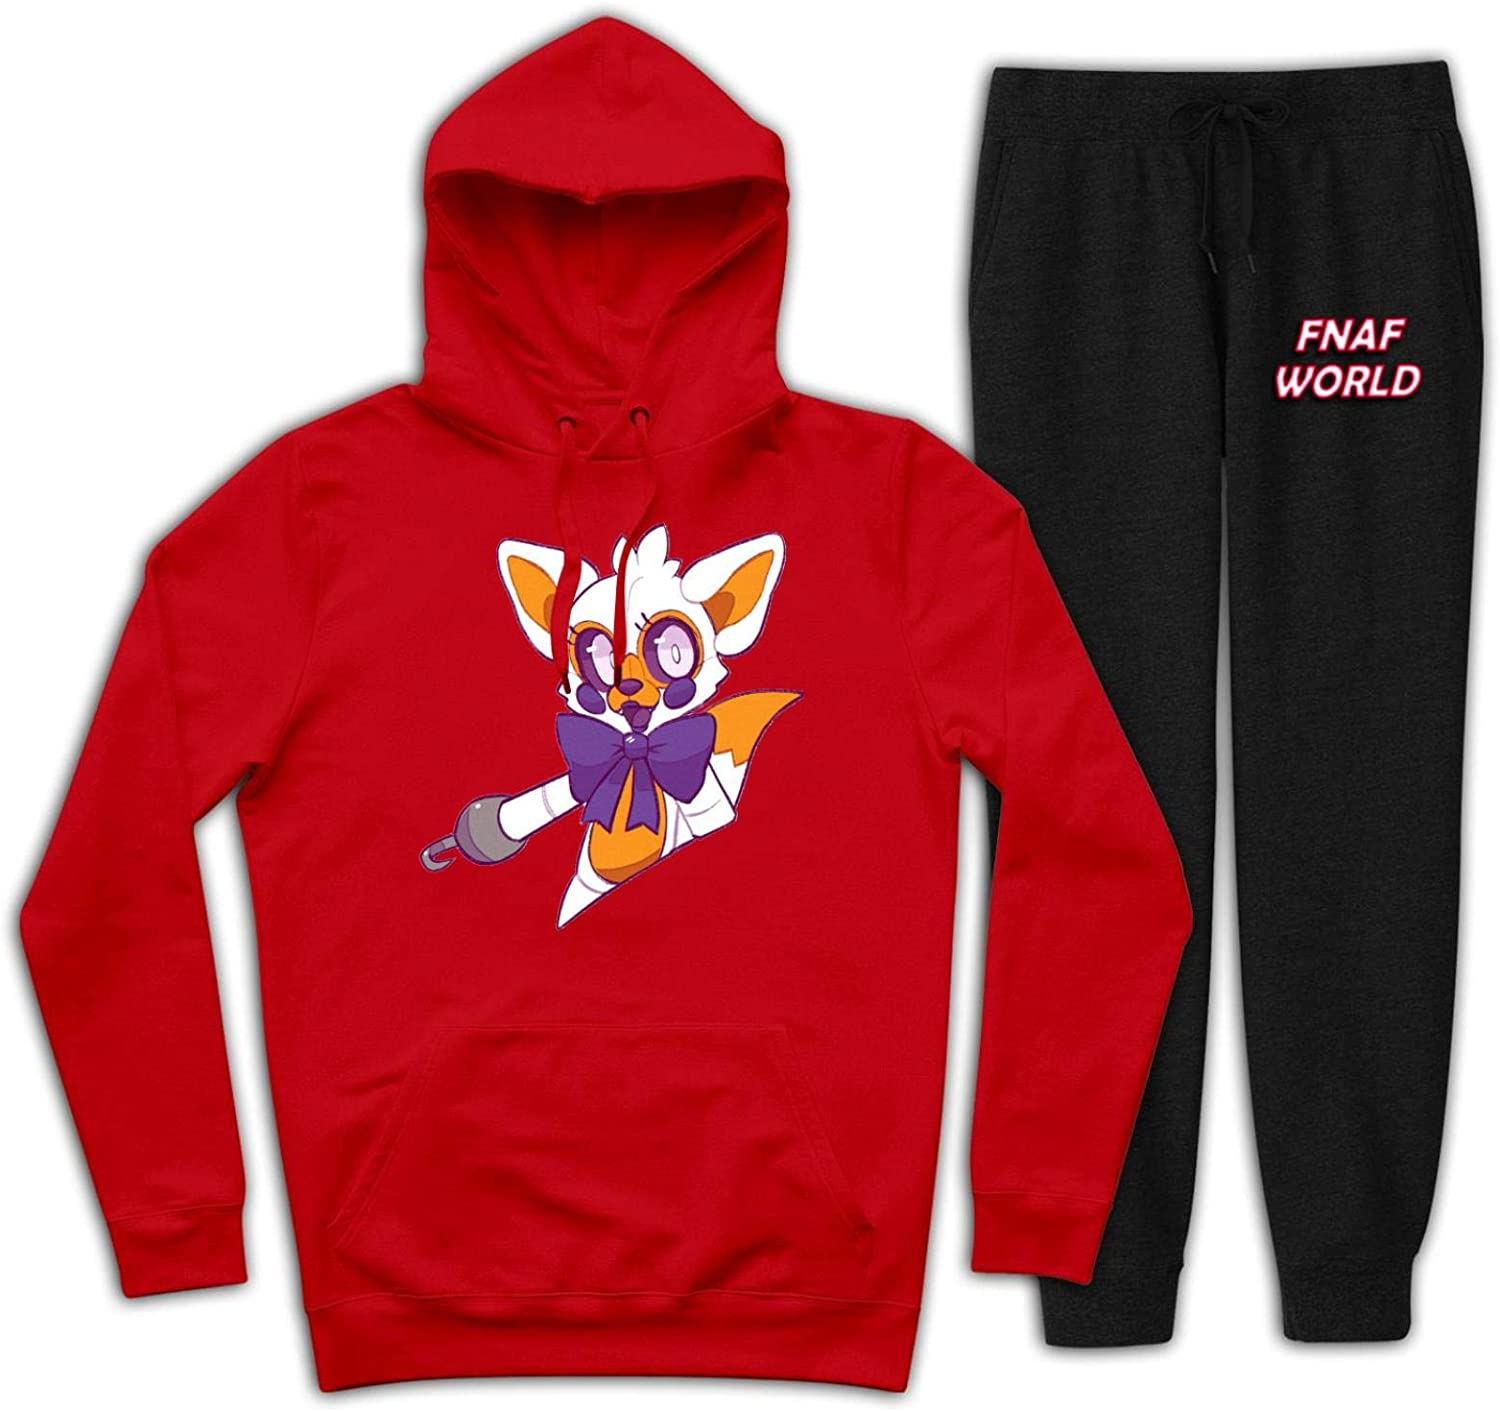 FN/_af Cute Lo/_lbit Youth Hoodies and Sweatpants Set Casual Sweatshirt Suit 2 Pieces Tracksuits for Boys Girls